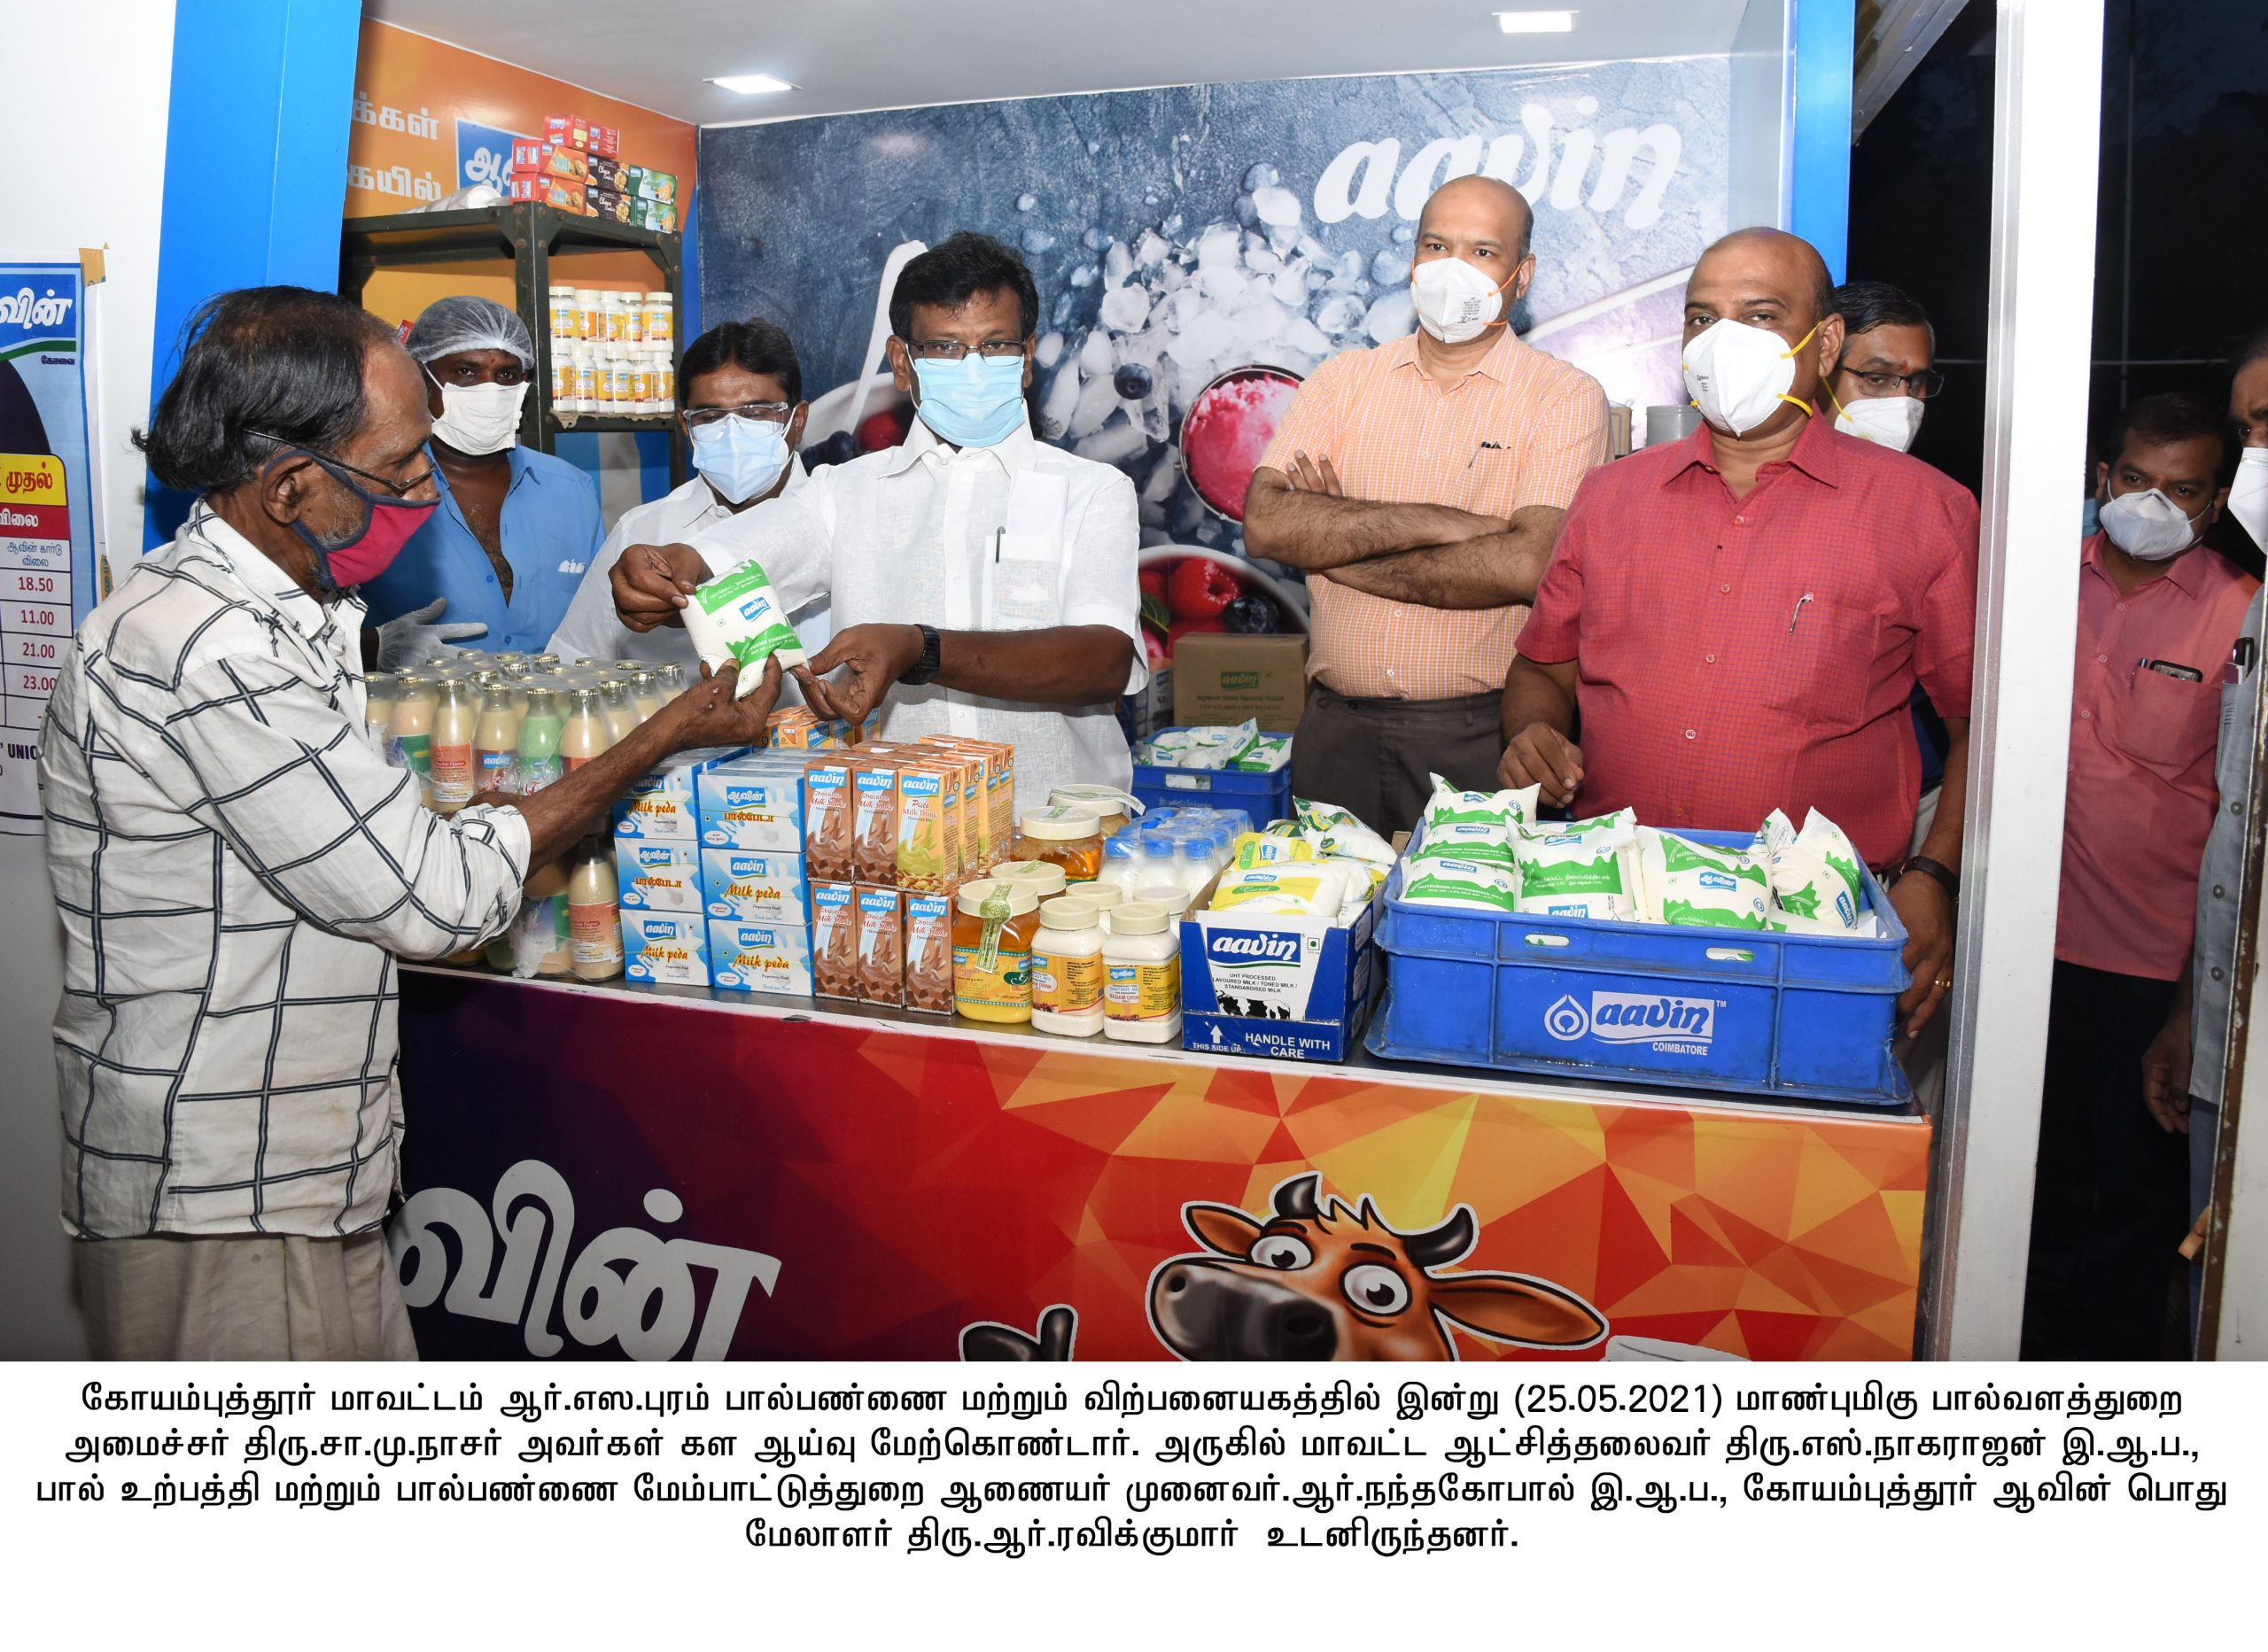 Honble Minister for Milk and Dairy Development Inspection at Milk Booth and Aavin